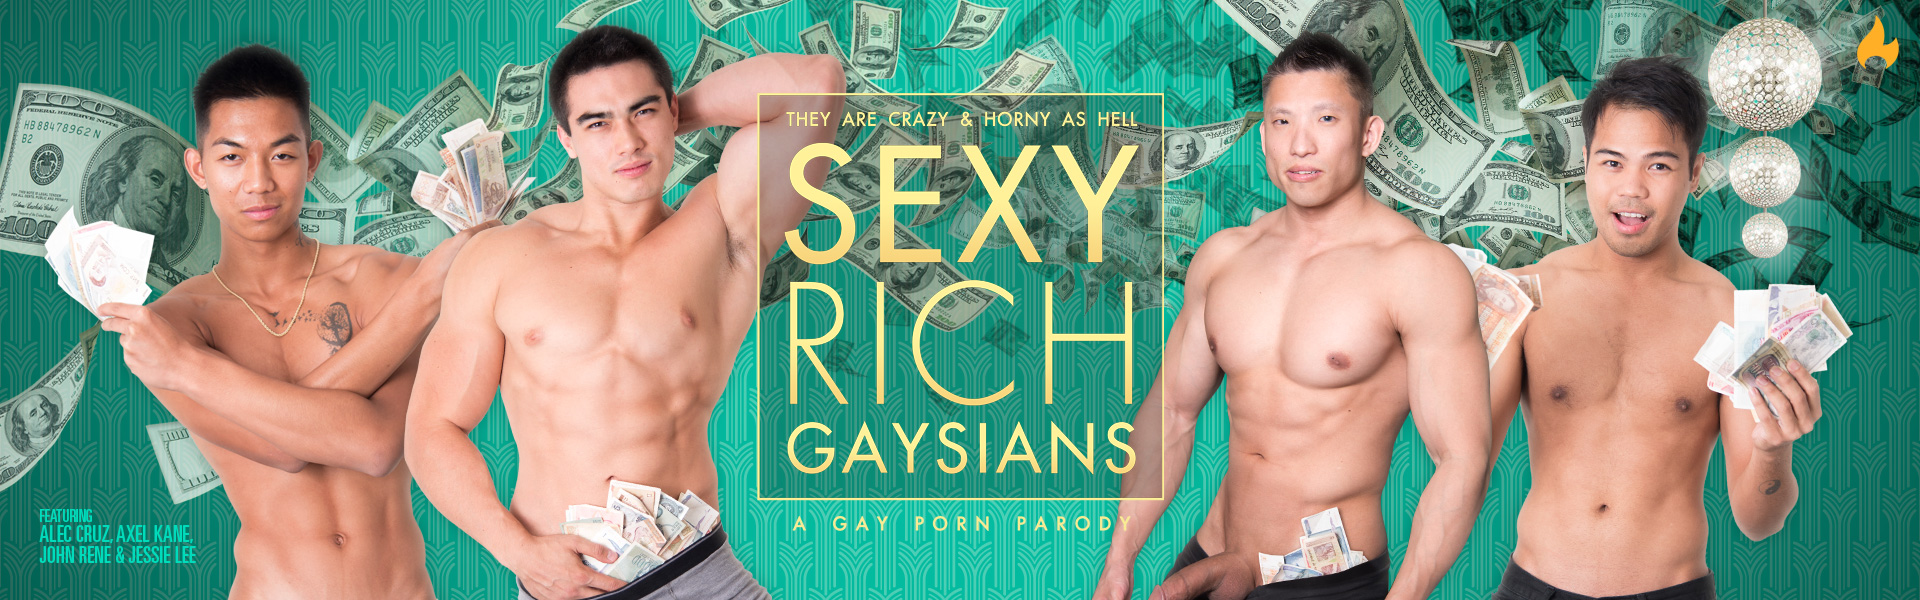 Peterfever - Sexy Rich Gaysians